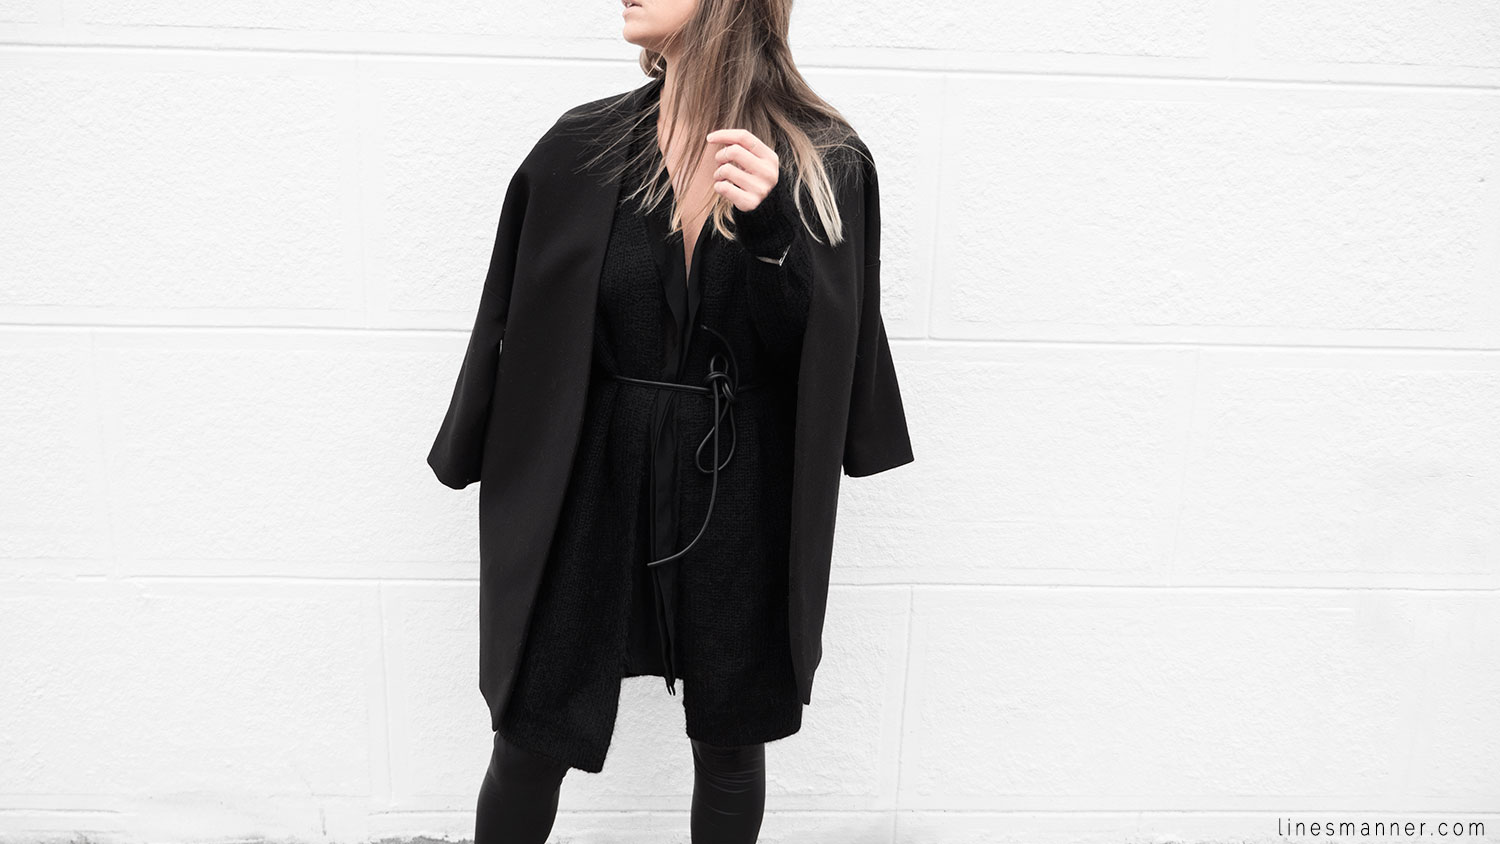 Lines-Manner-Remind-2015-Minimal-Essential-Outfit-Inspiration-Blog-Timeless-Year-Seasons-Details-Travel-Fashion-Versatile-Clean-Sleek-Quality-16